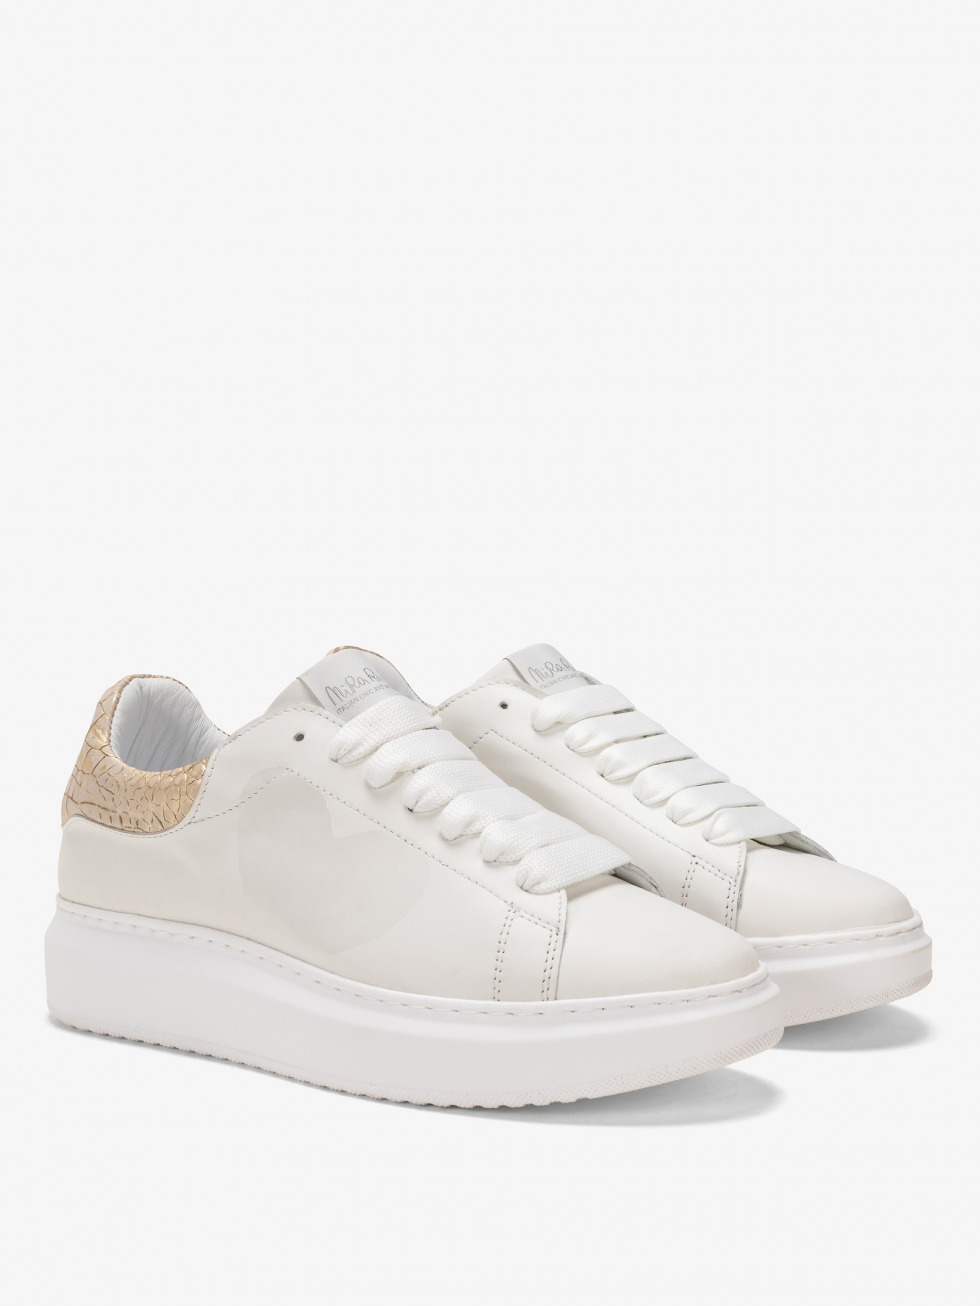 Angel Sneakers Cocco Gold - Heart